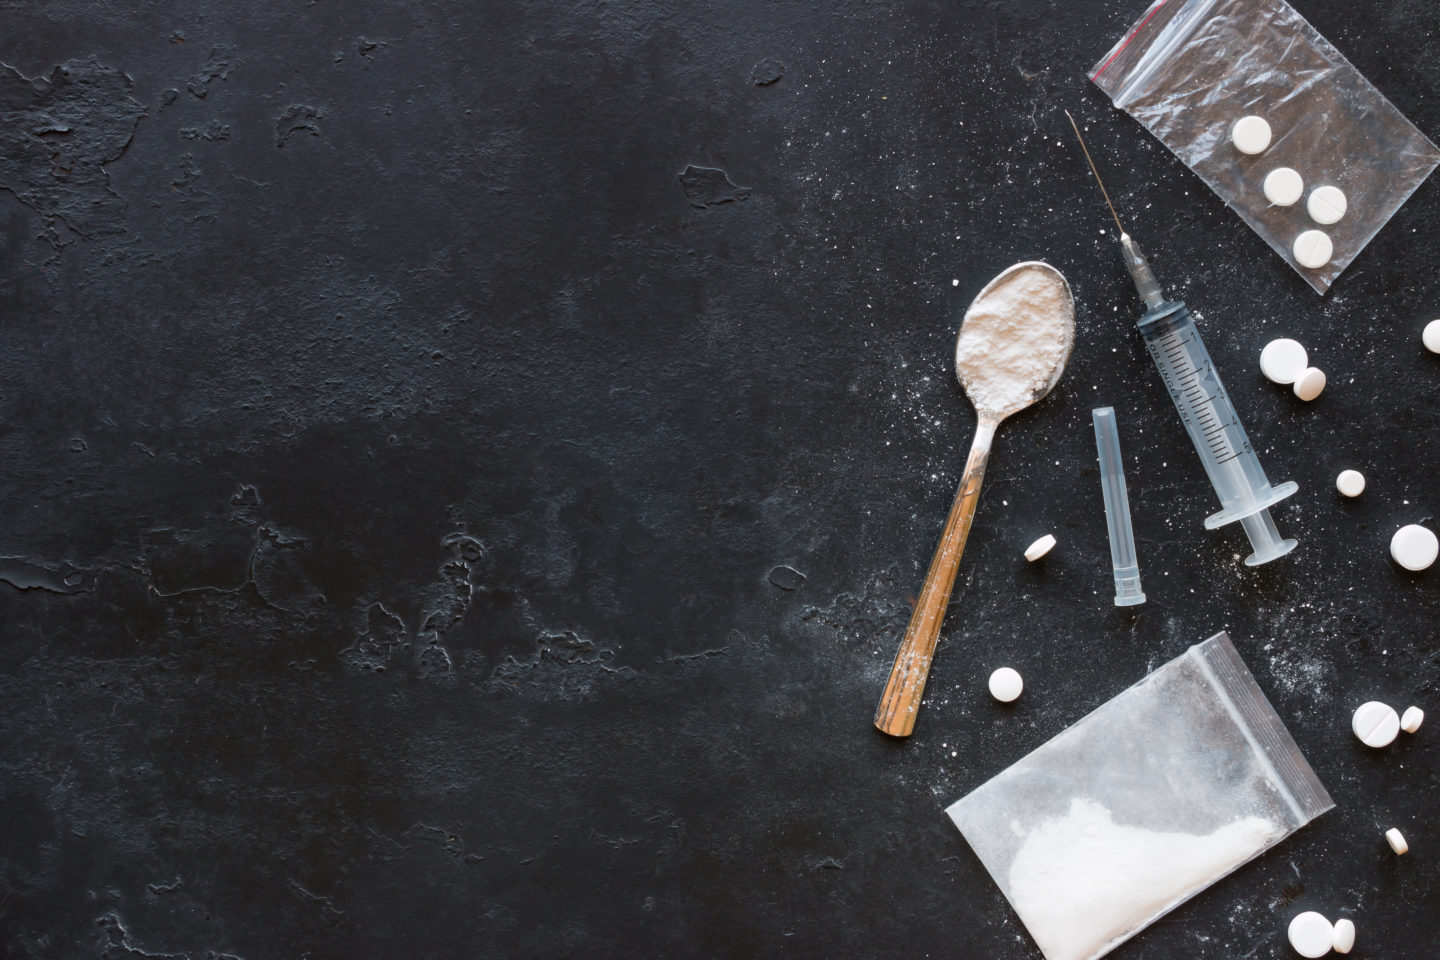 Drugs in the form of powder and tablets, a spoon and a syringe